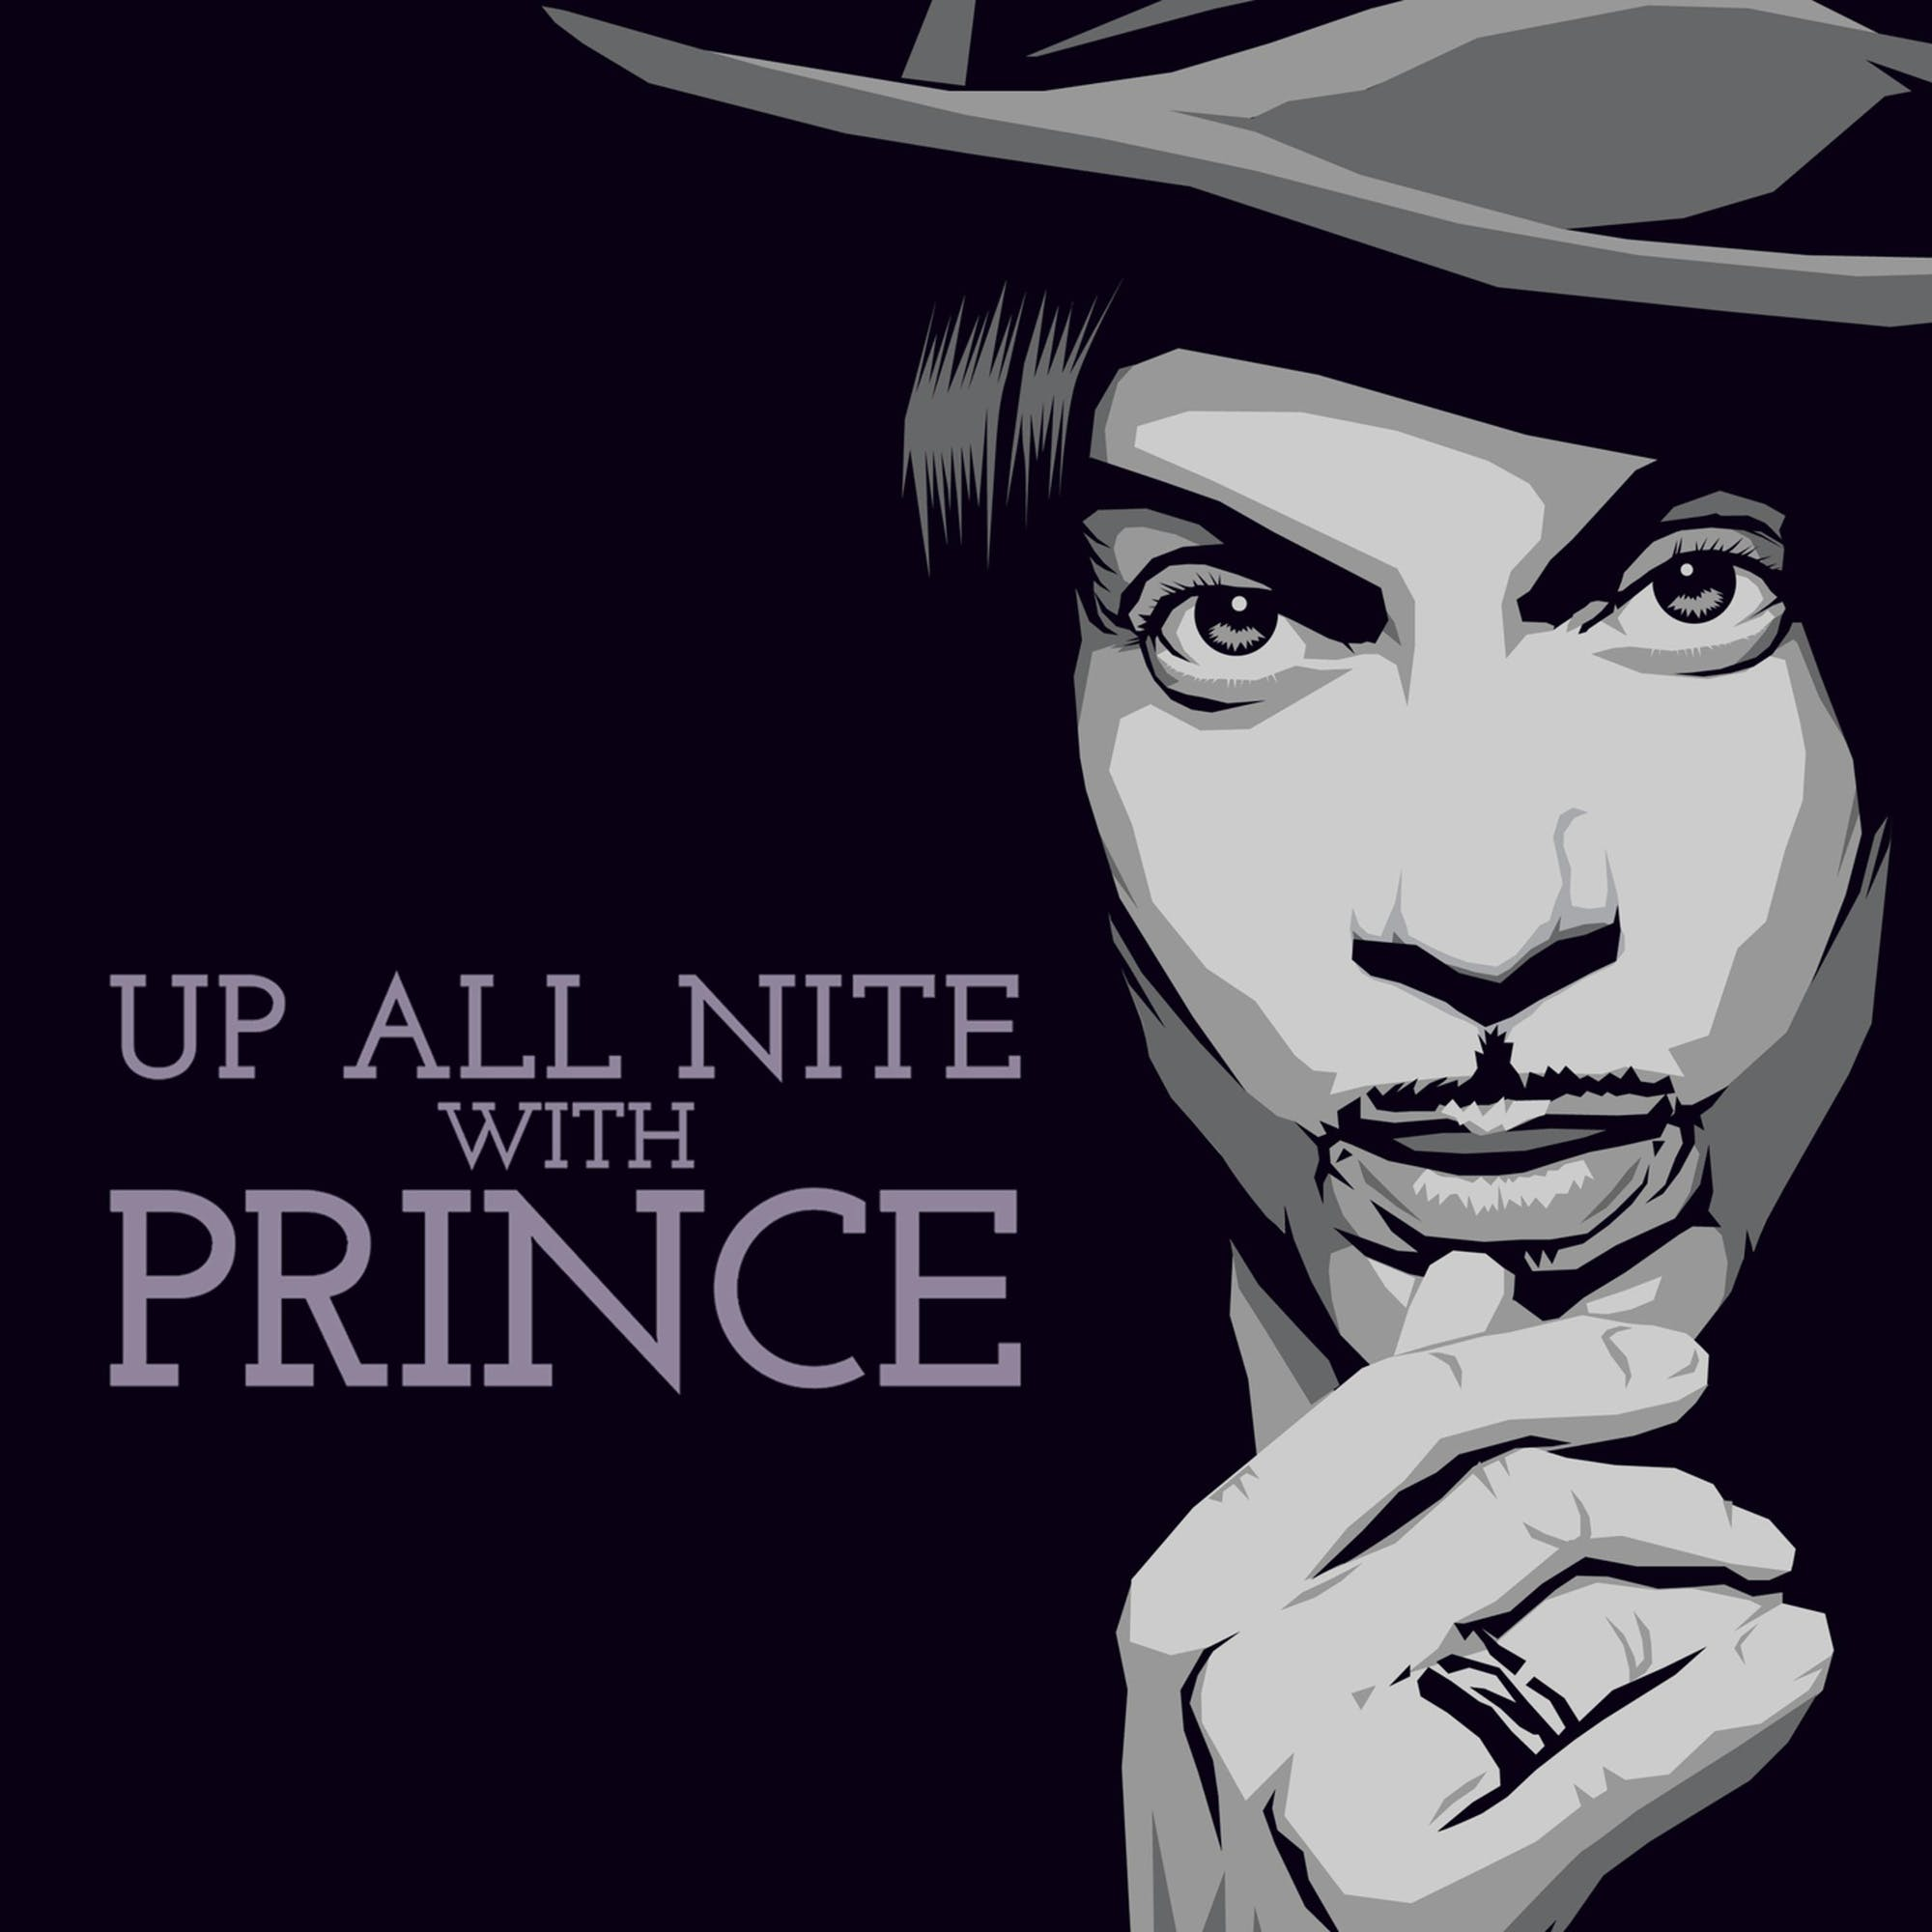 Up All Nite with Prince, Episode 1: The Atrium